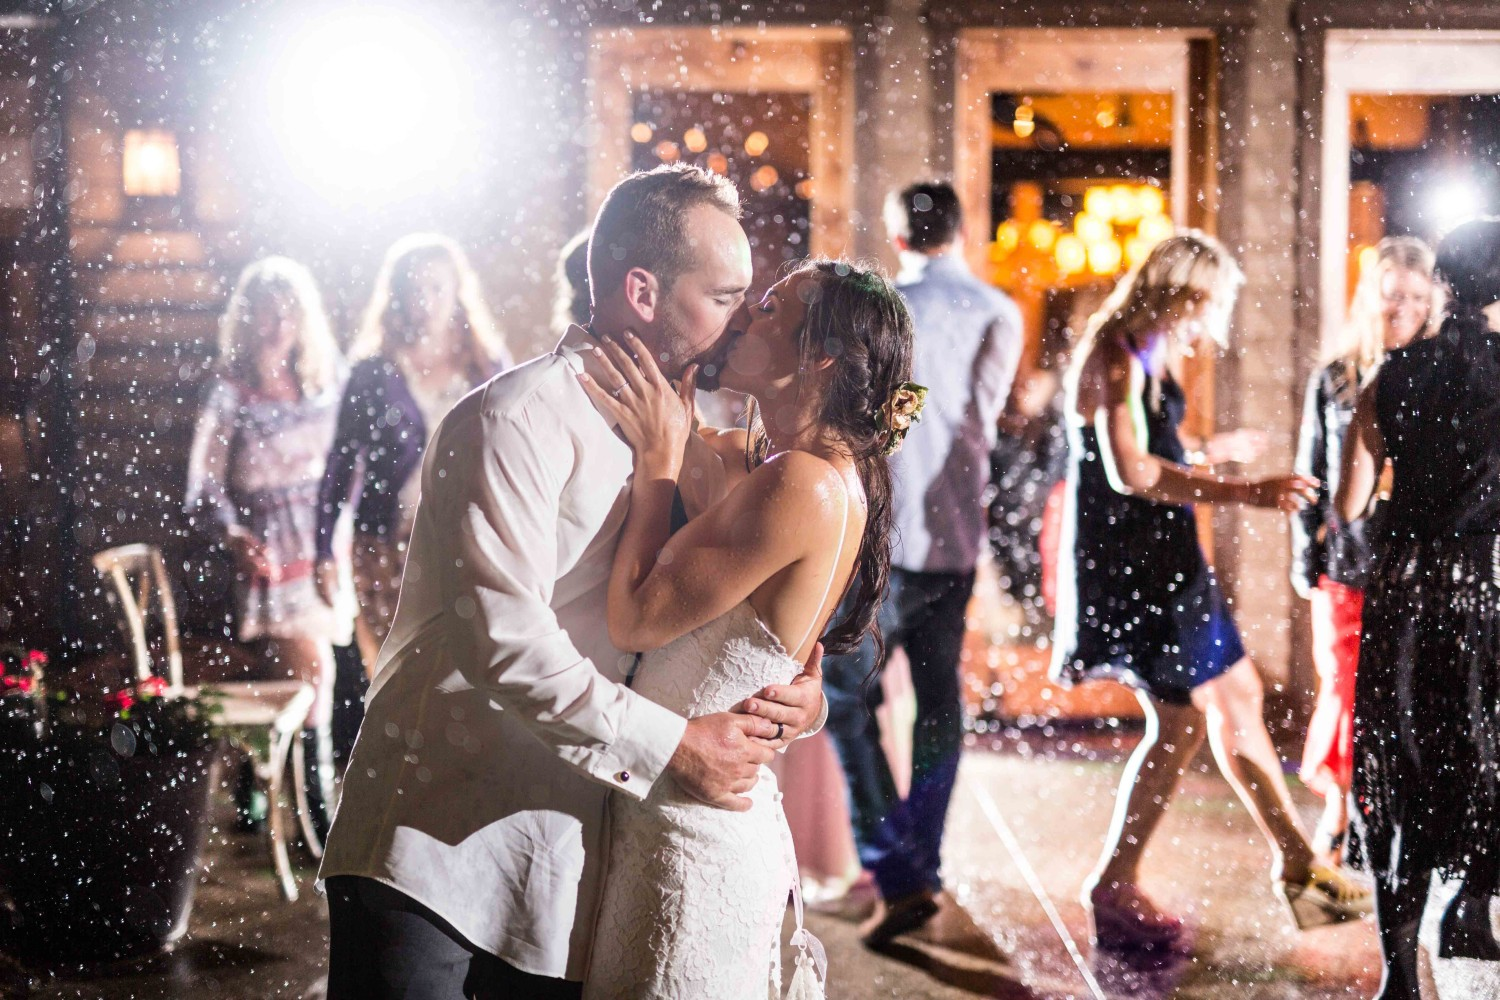 Bride and groom kissing in the rain as they dance during their wedding reception.